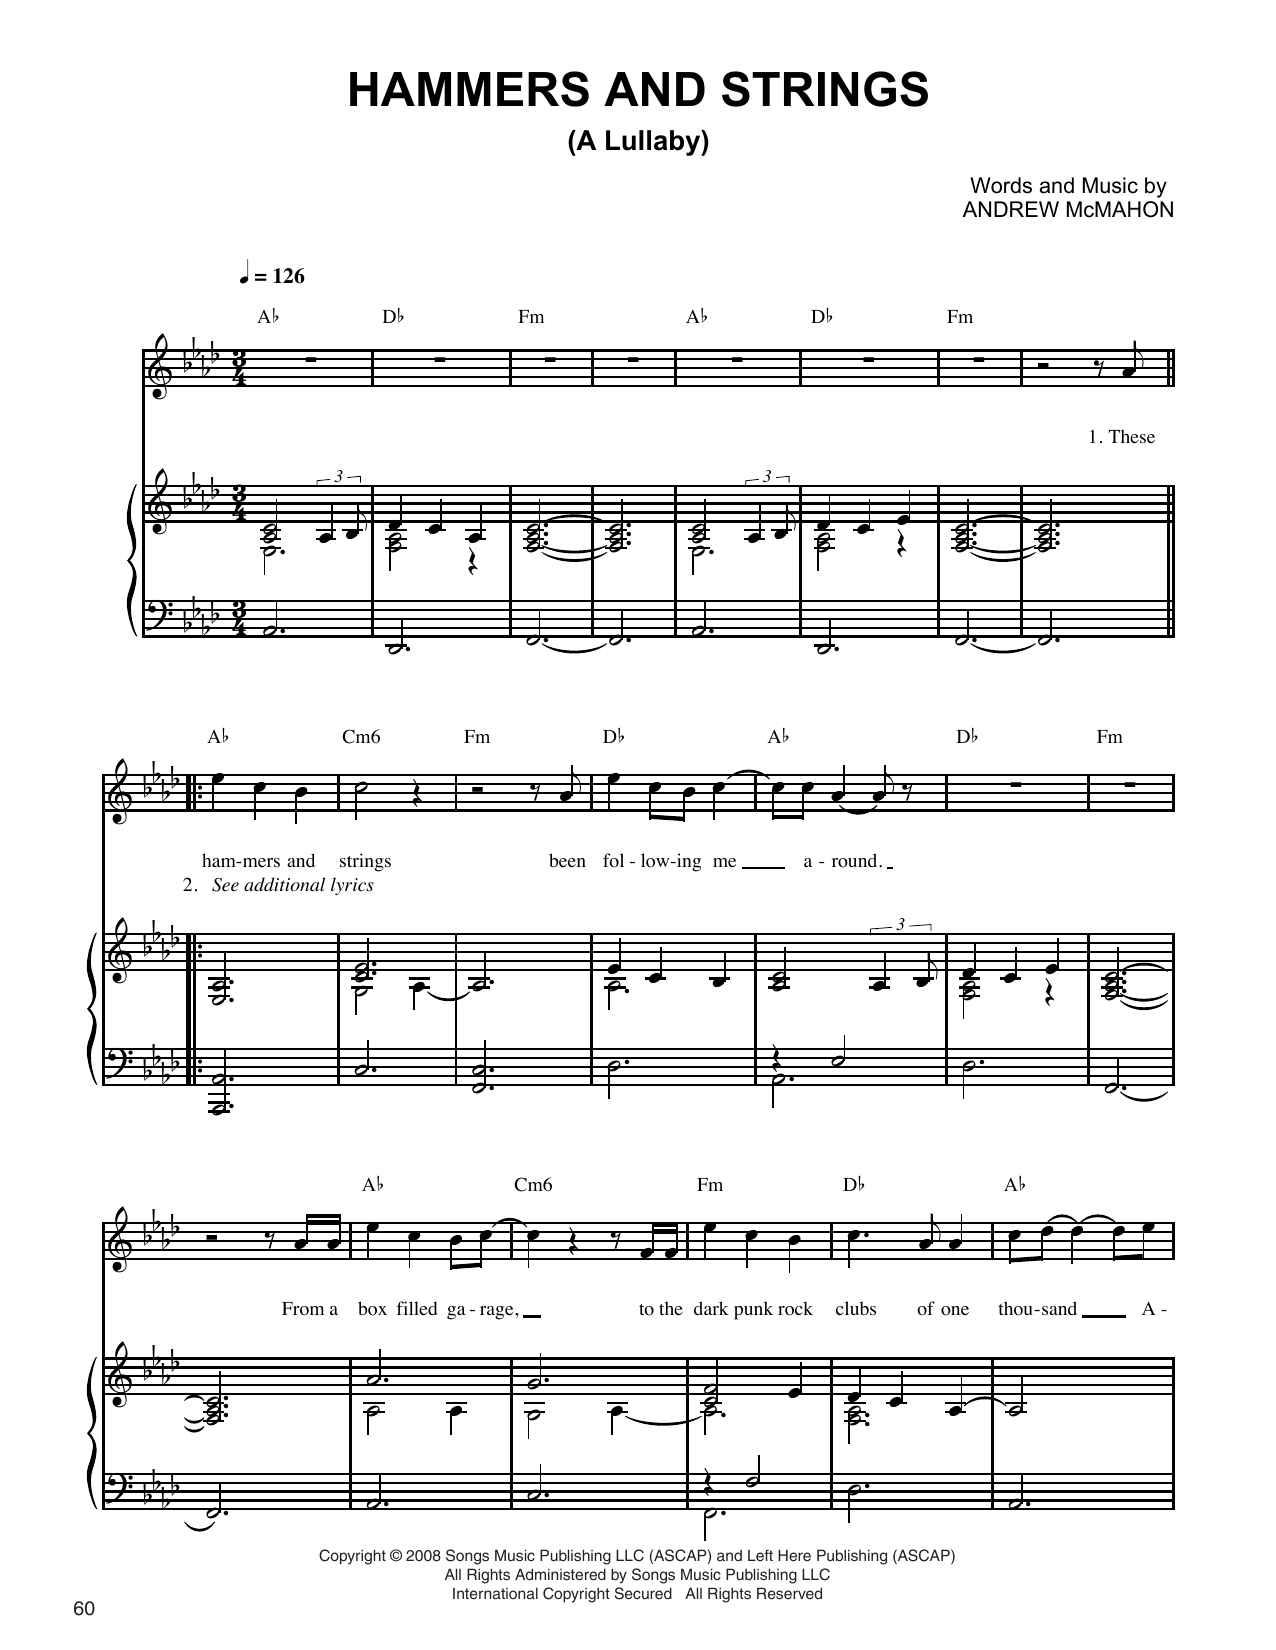 Jack's Mannequin Hammers And Strings (A Lullaby) sheet music notes and chords. Download Printable PDF.